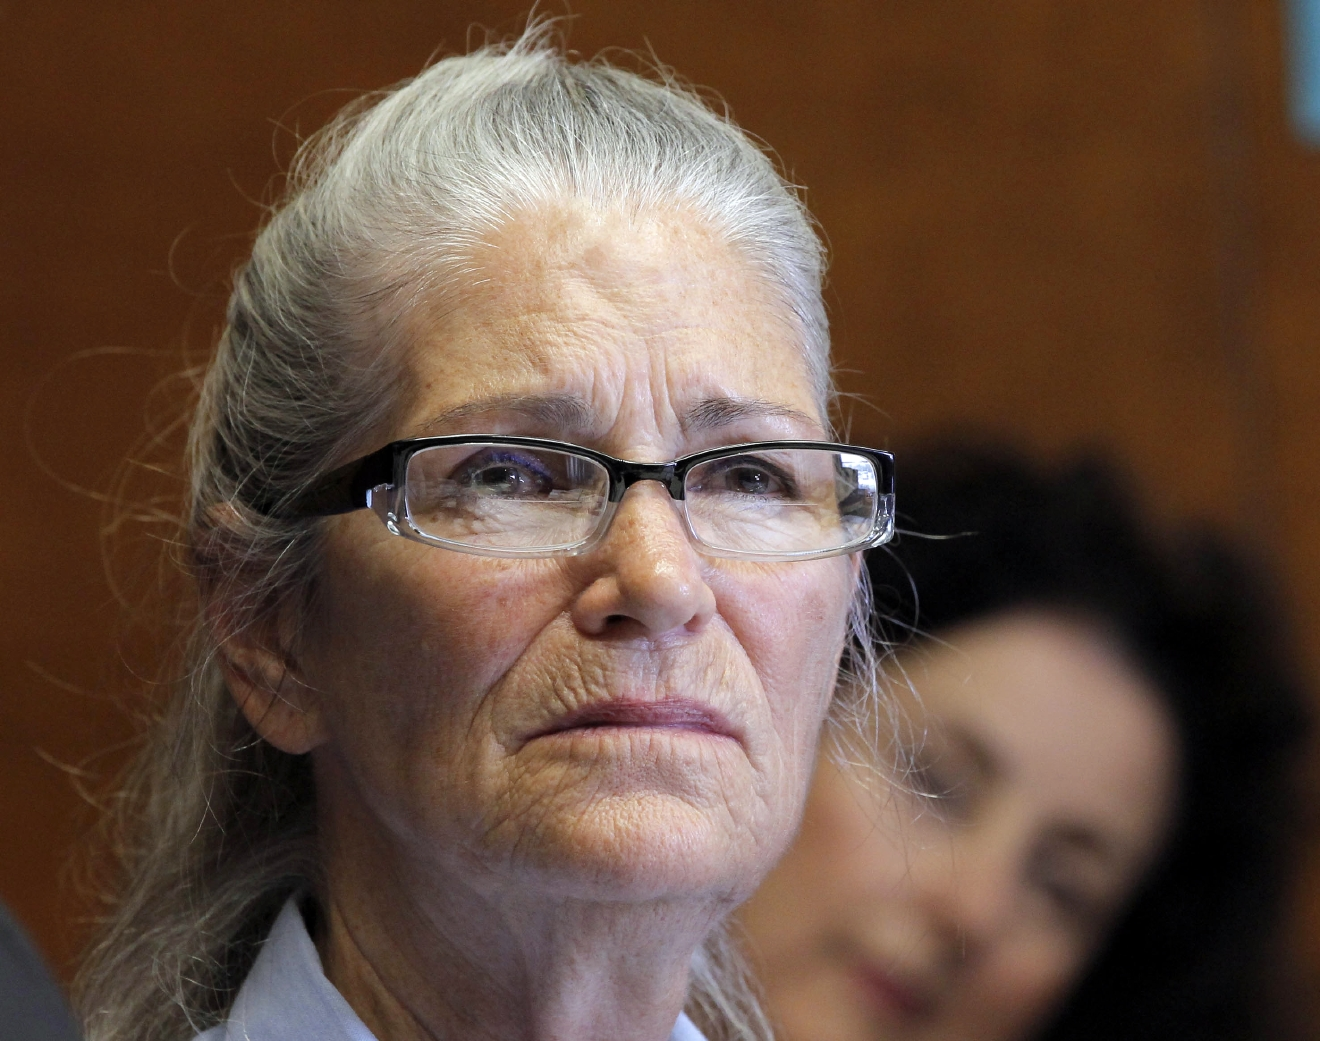 FILE- In this June 5, 2013, file photo, Leslie Van Houten appears during her parole hearing at the California Institution for Women in Chino, Calif. The youngest of Charles MansonÂ?s followers to take part in one of the nationÂ?s most notorious killings is trying again for parole. Van Houten is scheduled for her 21st hearing before a parole board panel Thursday, April 14, 2016, at a womenÂ?s prison in Corona, Calif. (AP Photo/Nick Ut, File)